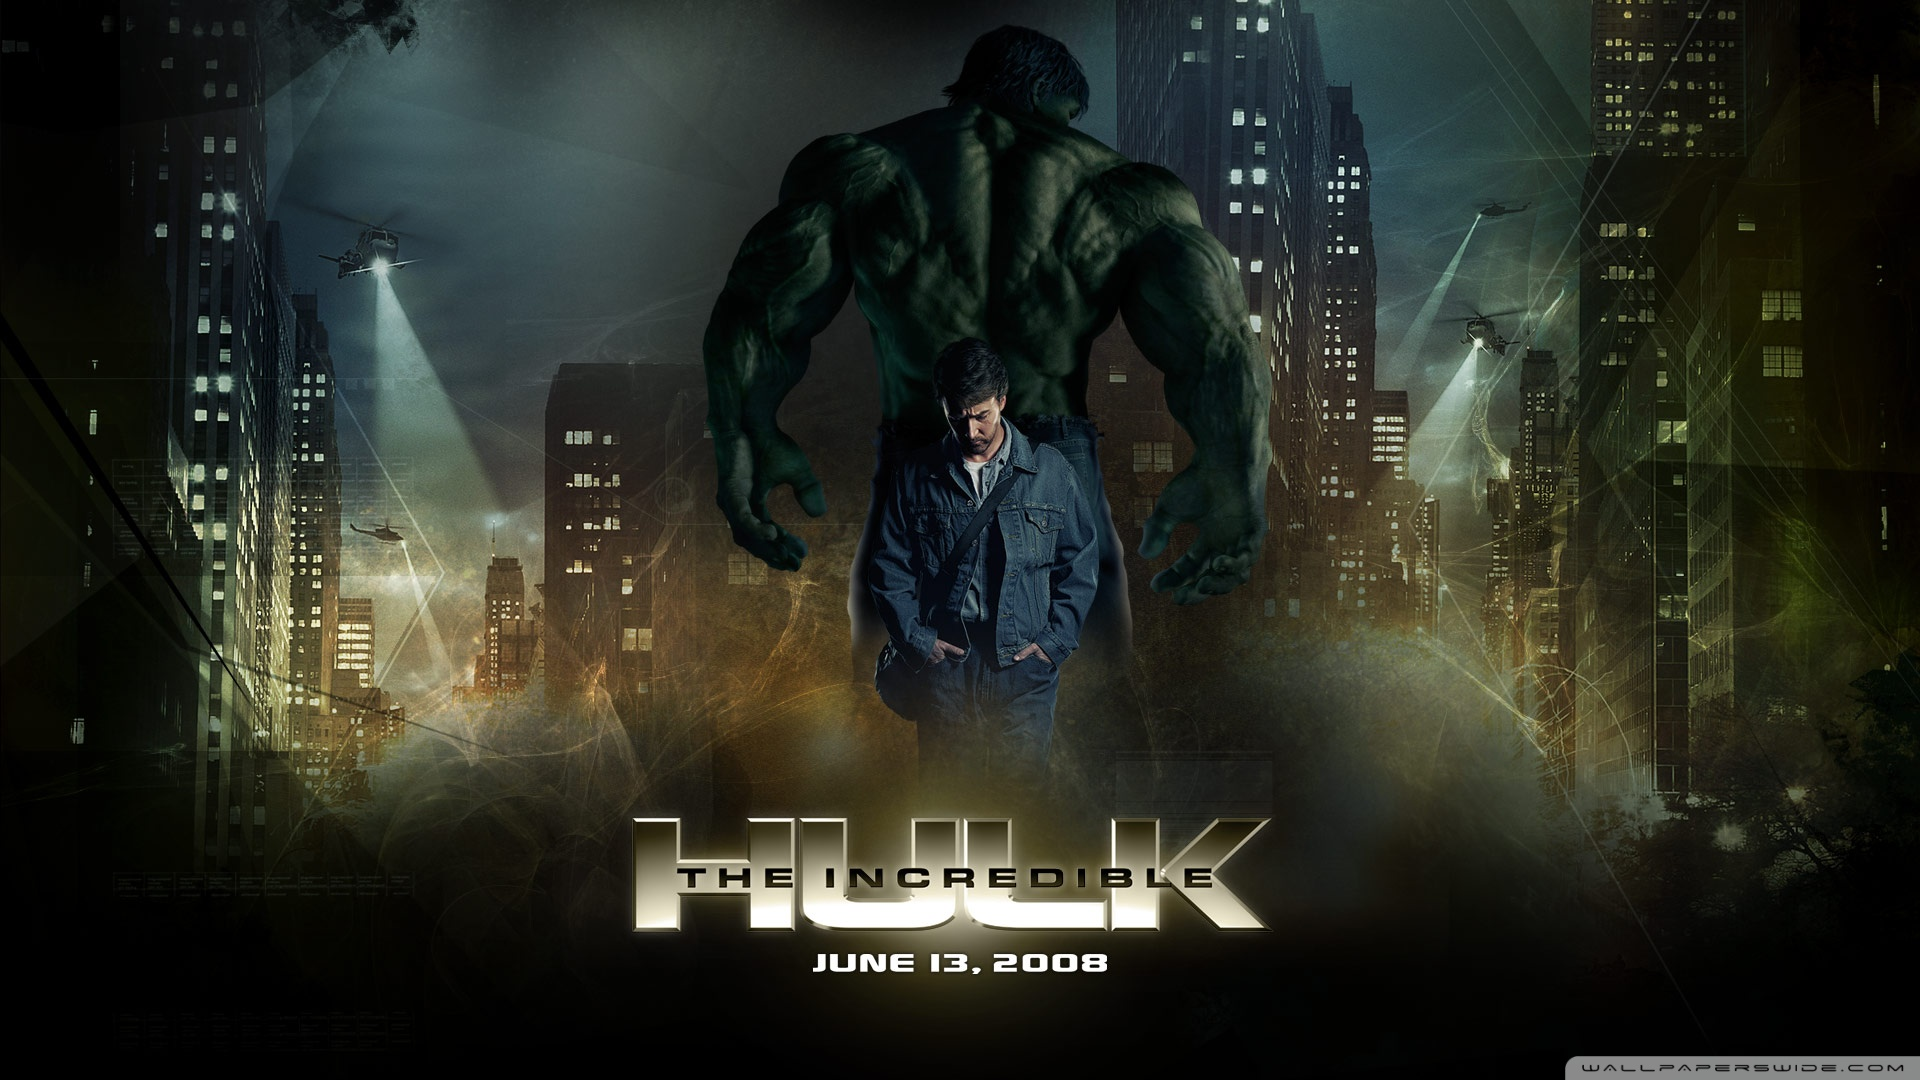 The Incredible Hulk 2 4K HD Desktop Wallpaper for 4K Ultra HD 1920x1080